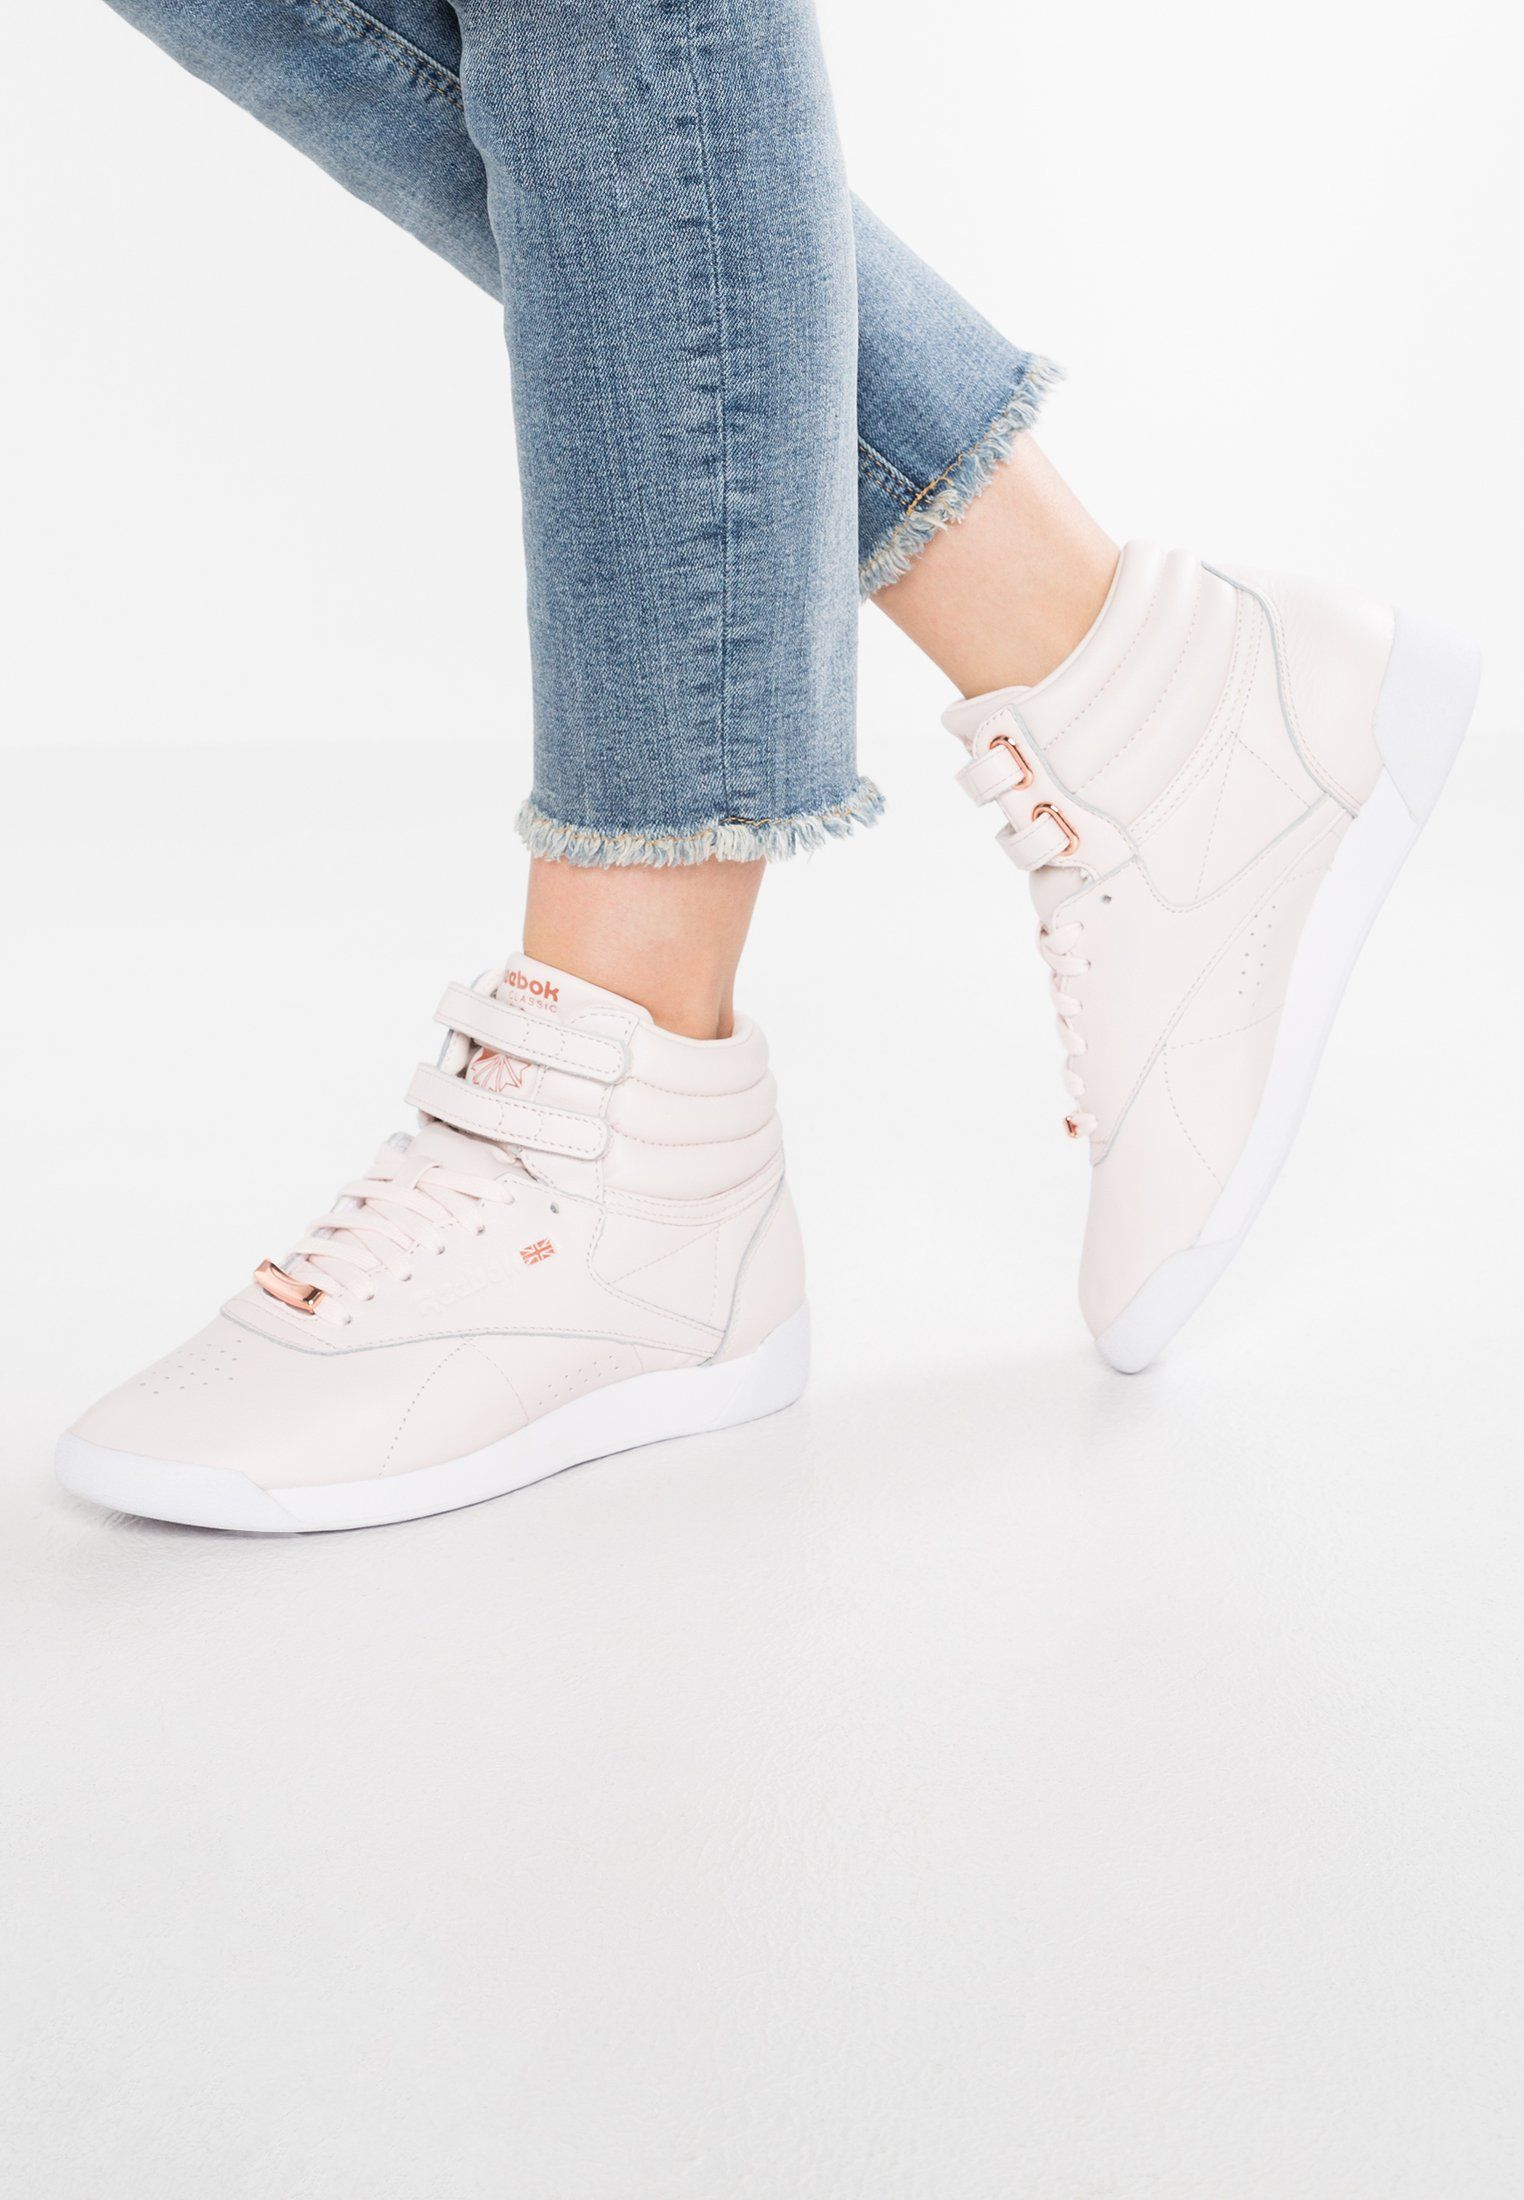 Reebok Classic FREESTYLE HI MUTED - High-top trainers - pale pink white  shadow for £69.95 (03 03 18) with free delivery at Zalando bec011f6e